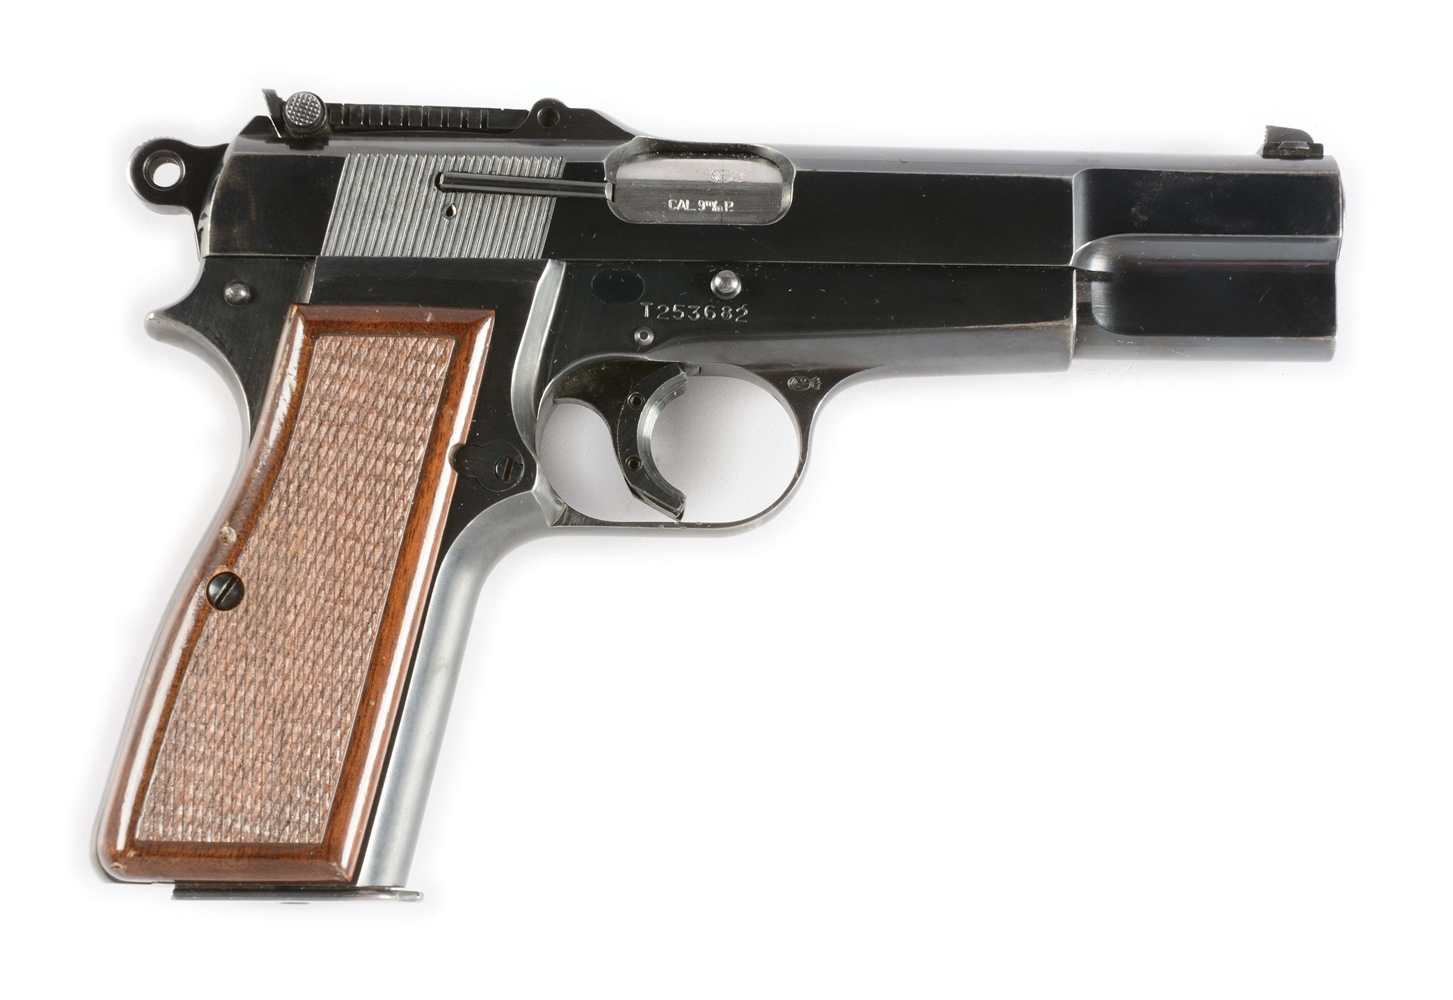 (C) Belgian Browning Hi-Power Semi-Automatic Pistol with Tangent Sight (1968).